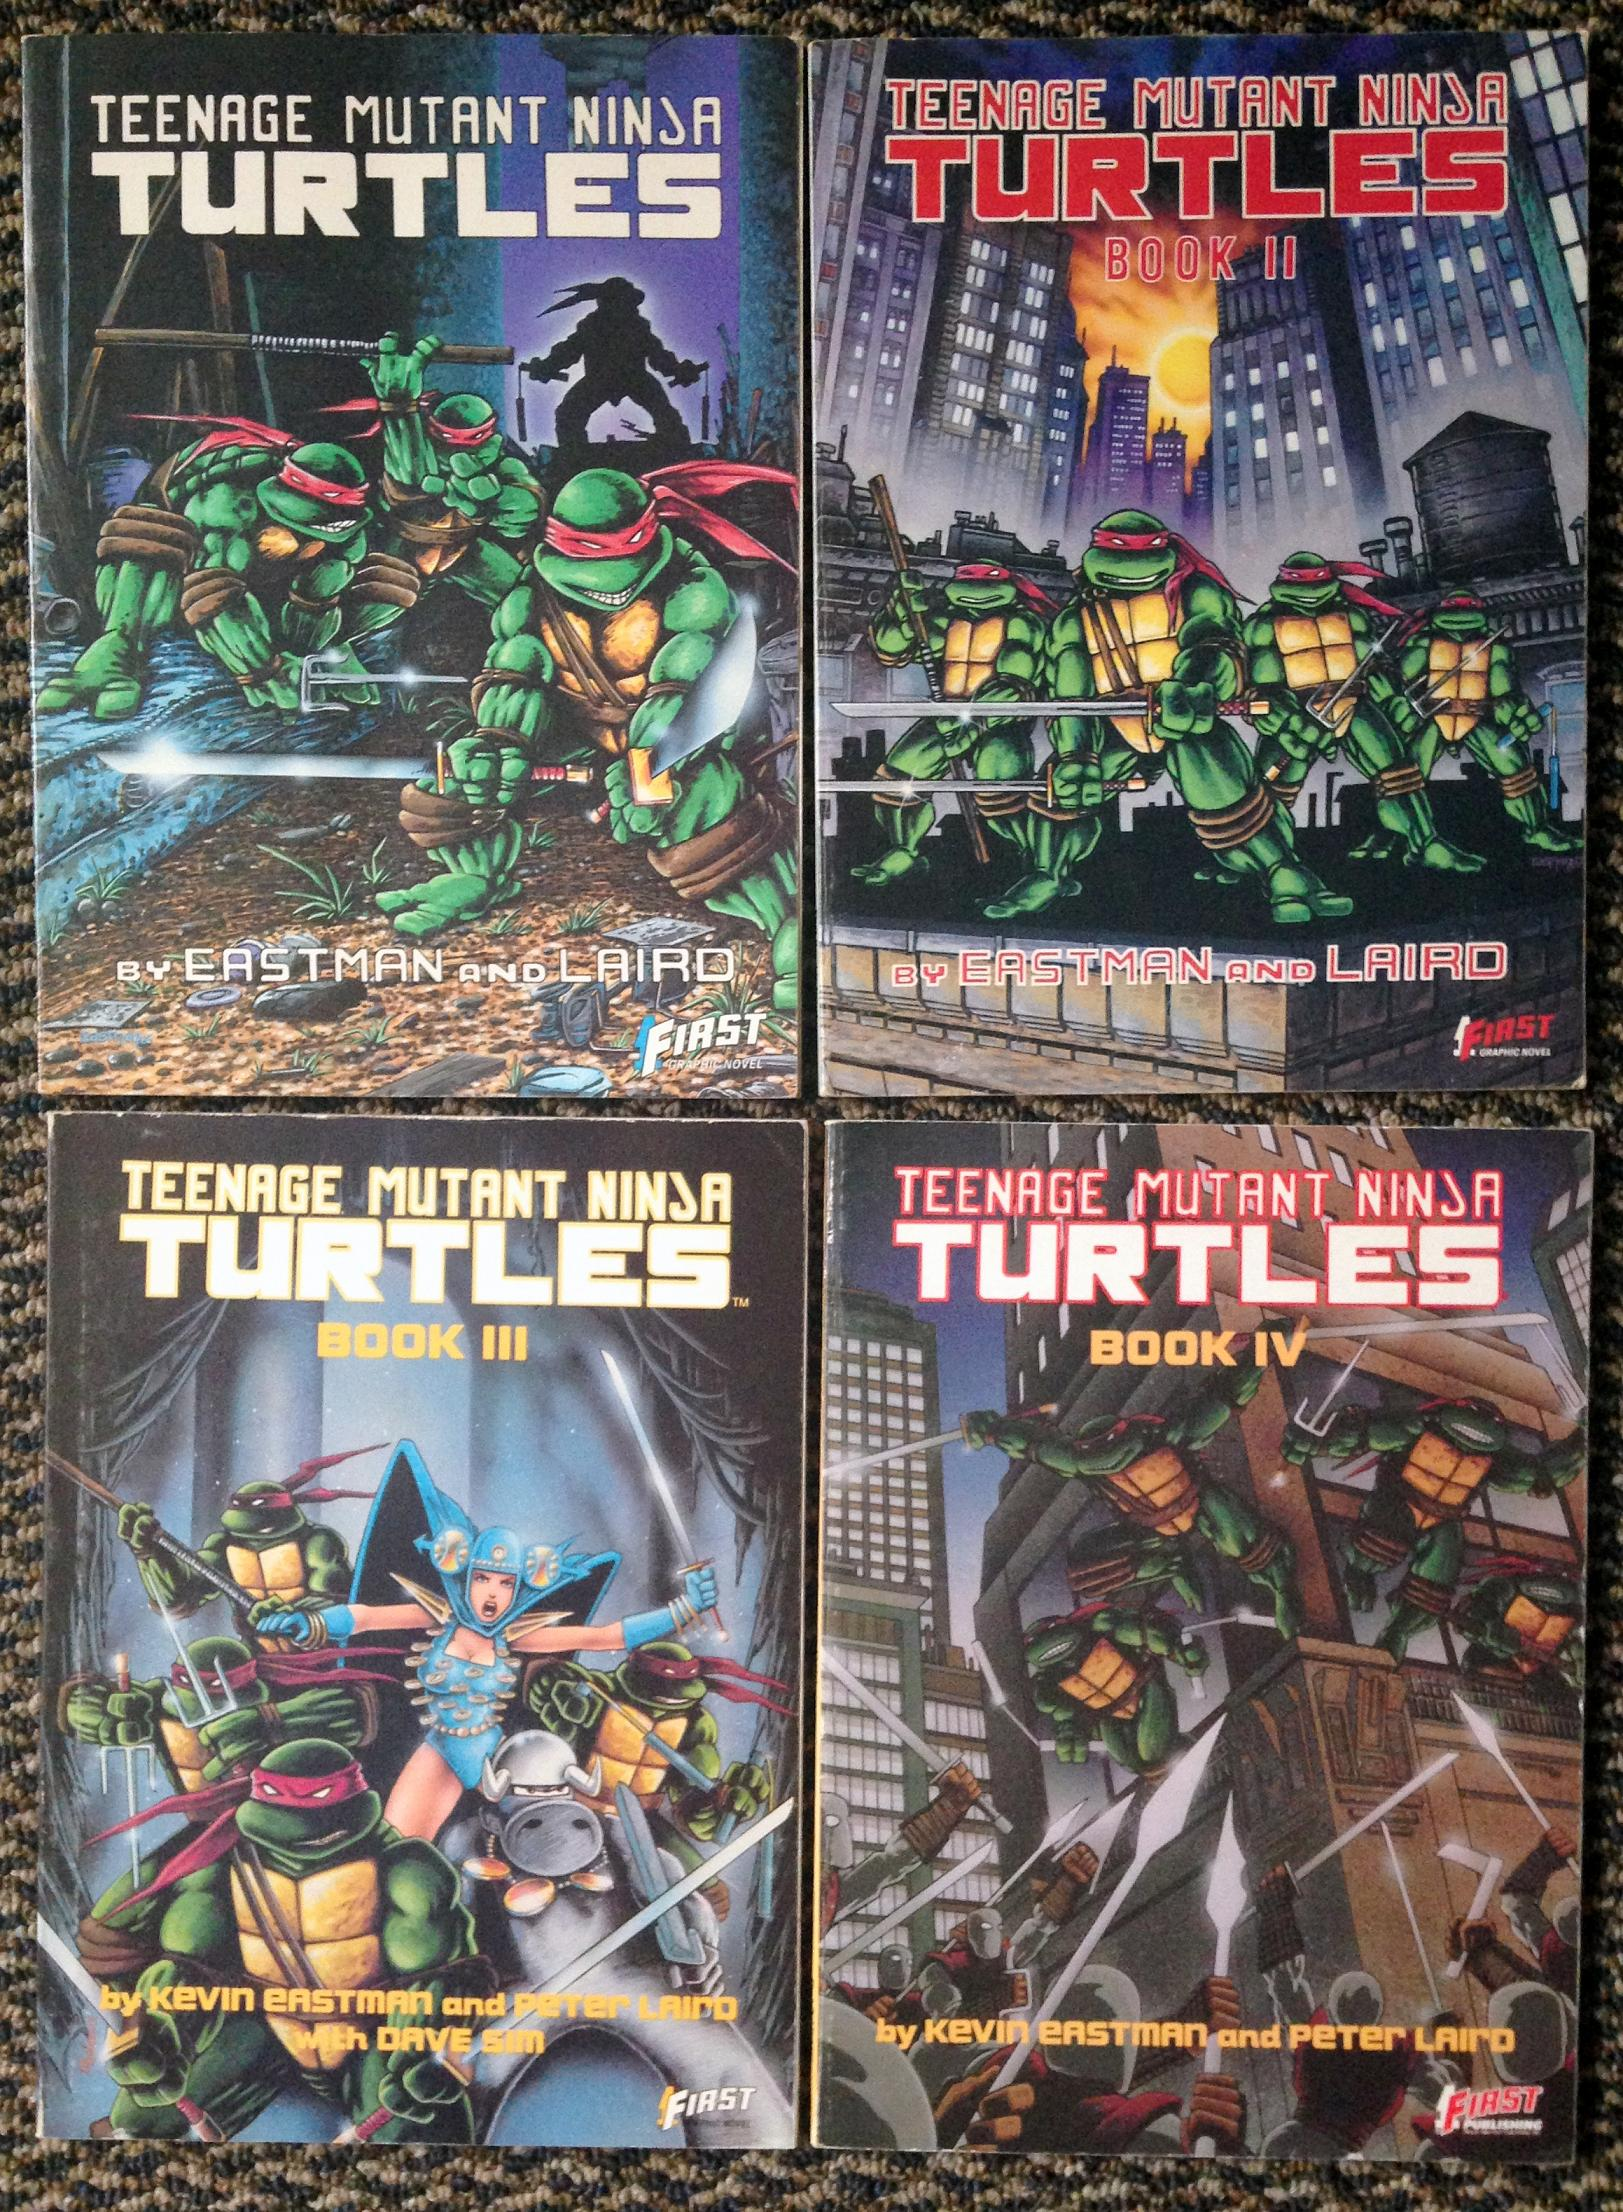 teenage mutant ninja turtles graphic novel set (2)